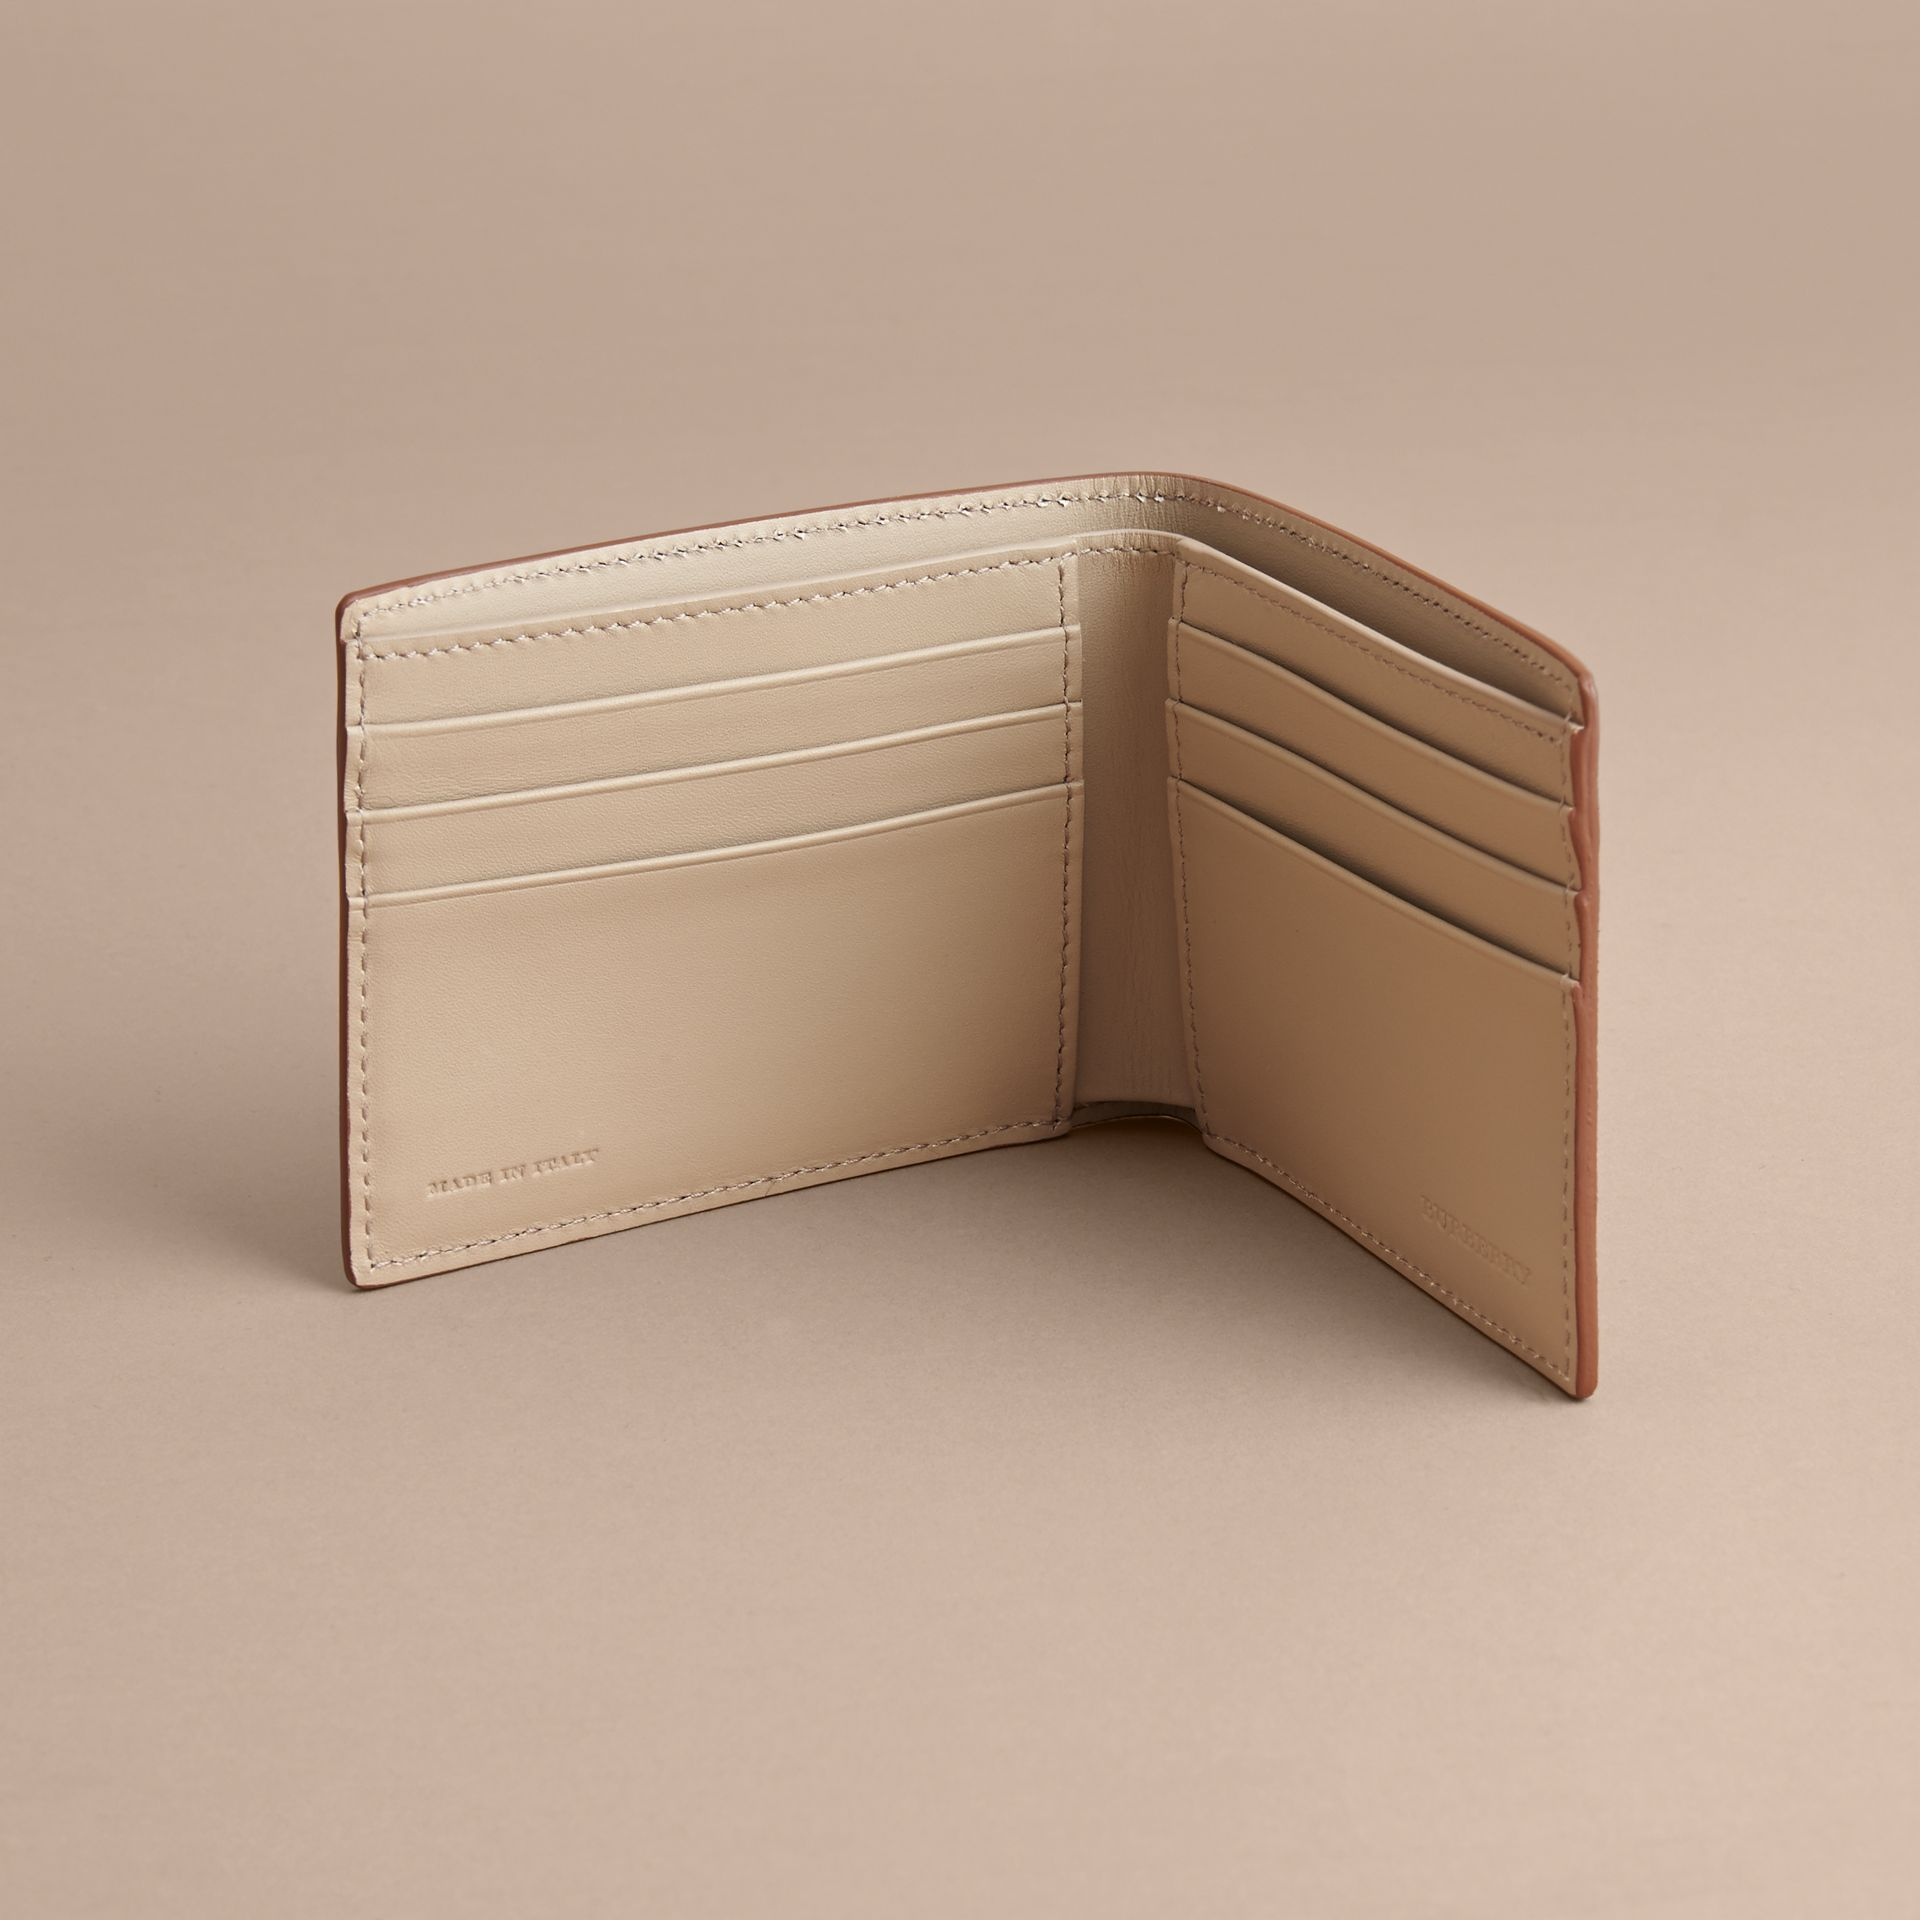 London Leather Bifold Wallet in Tan | Burberry United Kingdom - gallery image 5